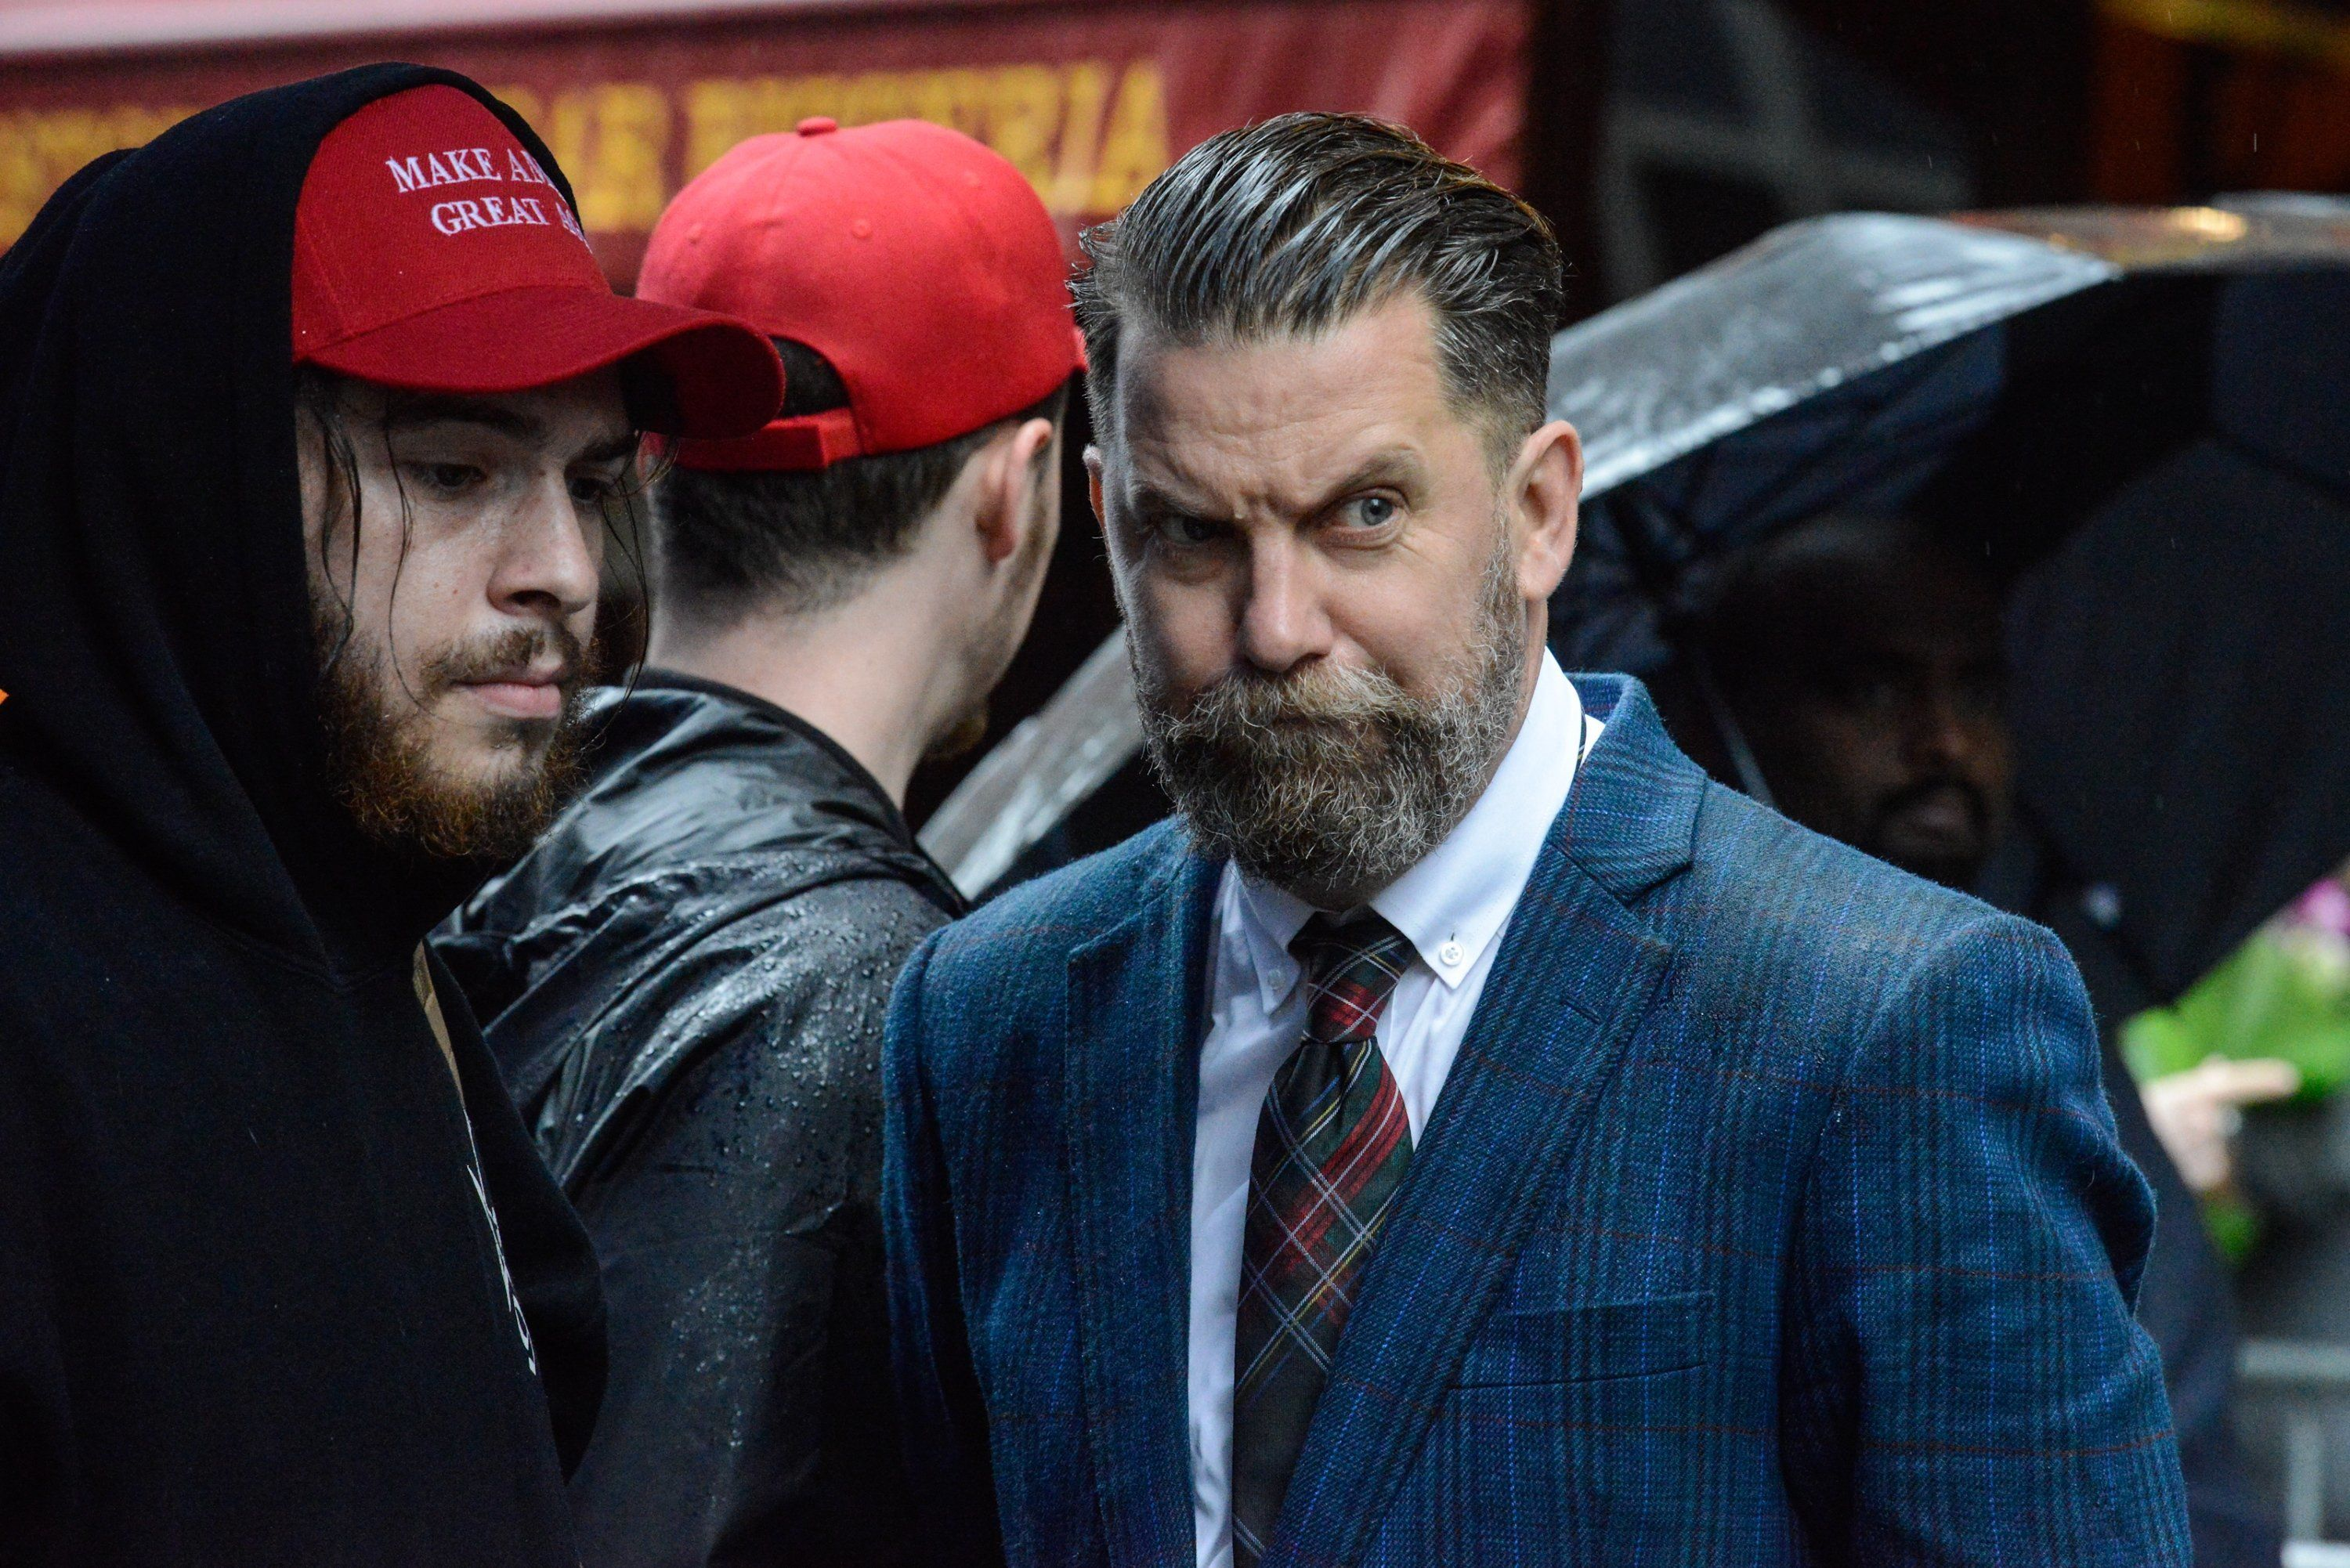 The Proud Boys, The GOP And 'The Fascist Creep' thumbnail